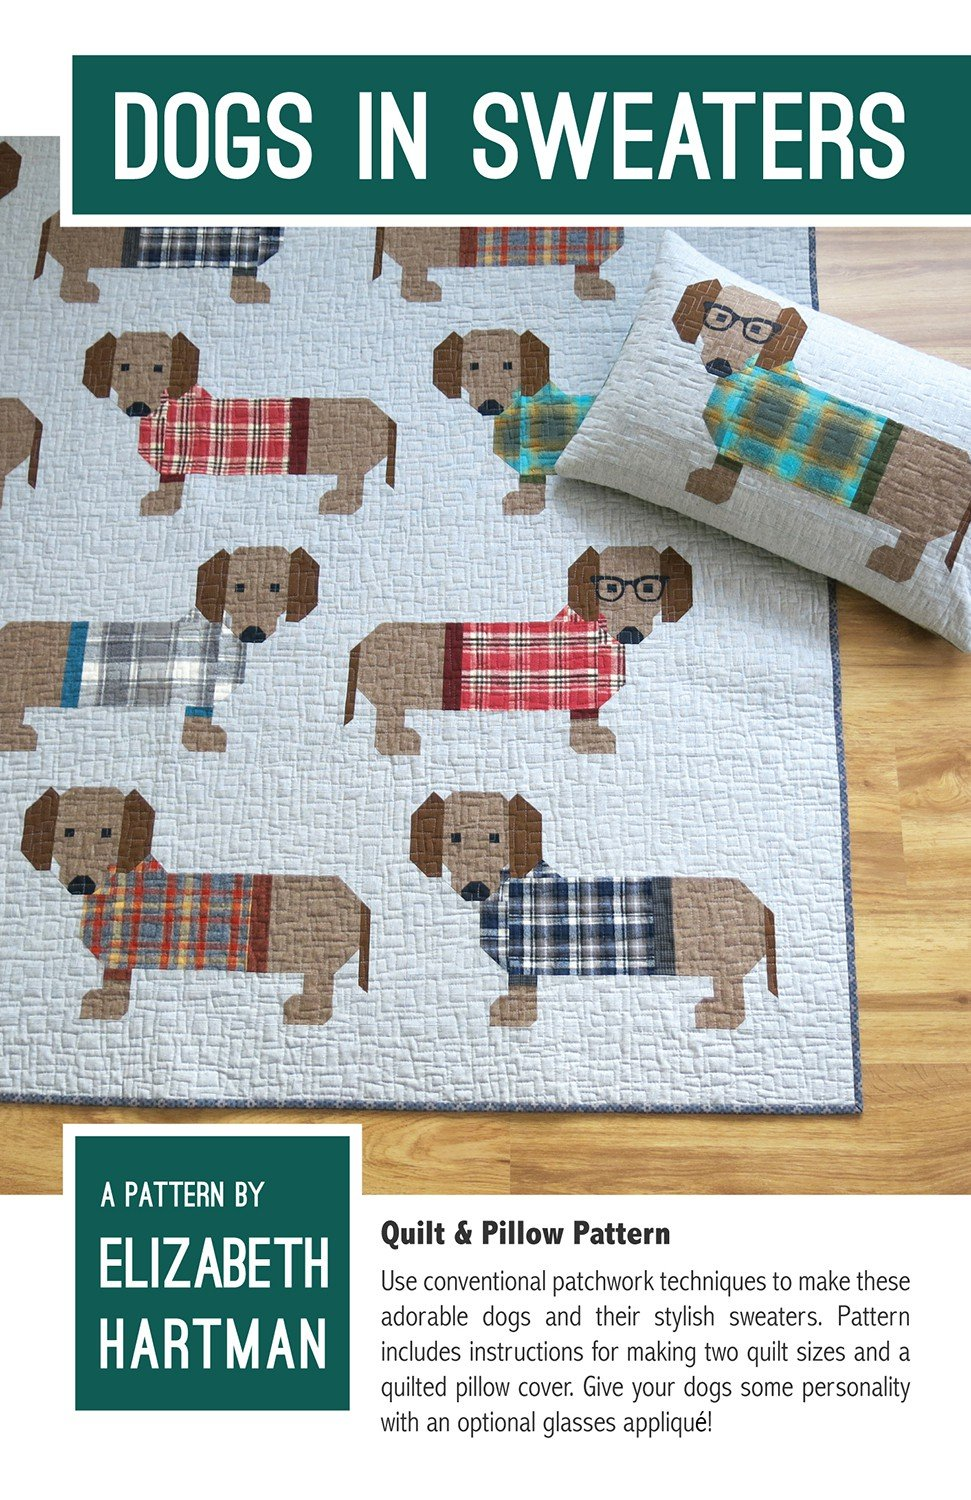 T-shirt quilt design instructions - Dogs In Sweaters By Elizabeth Hartman